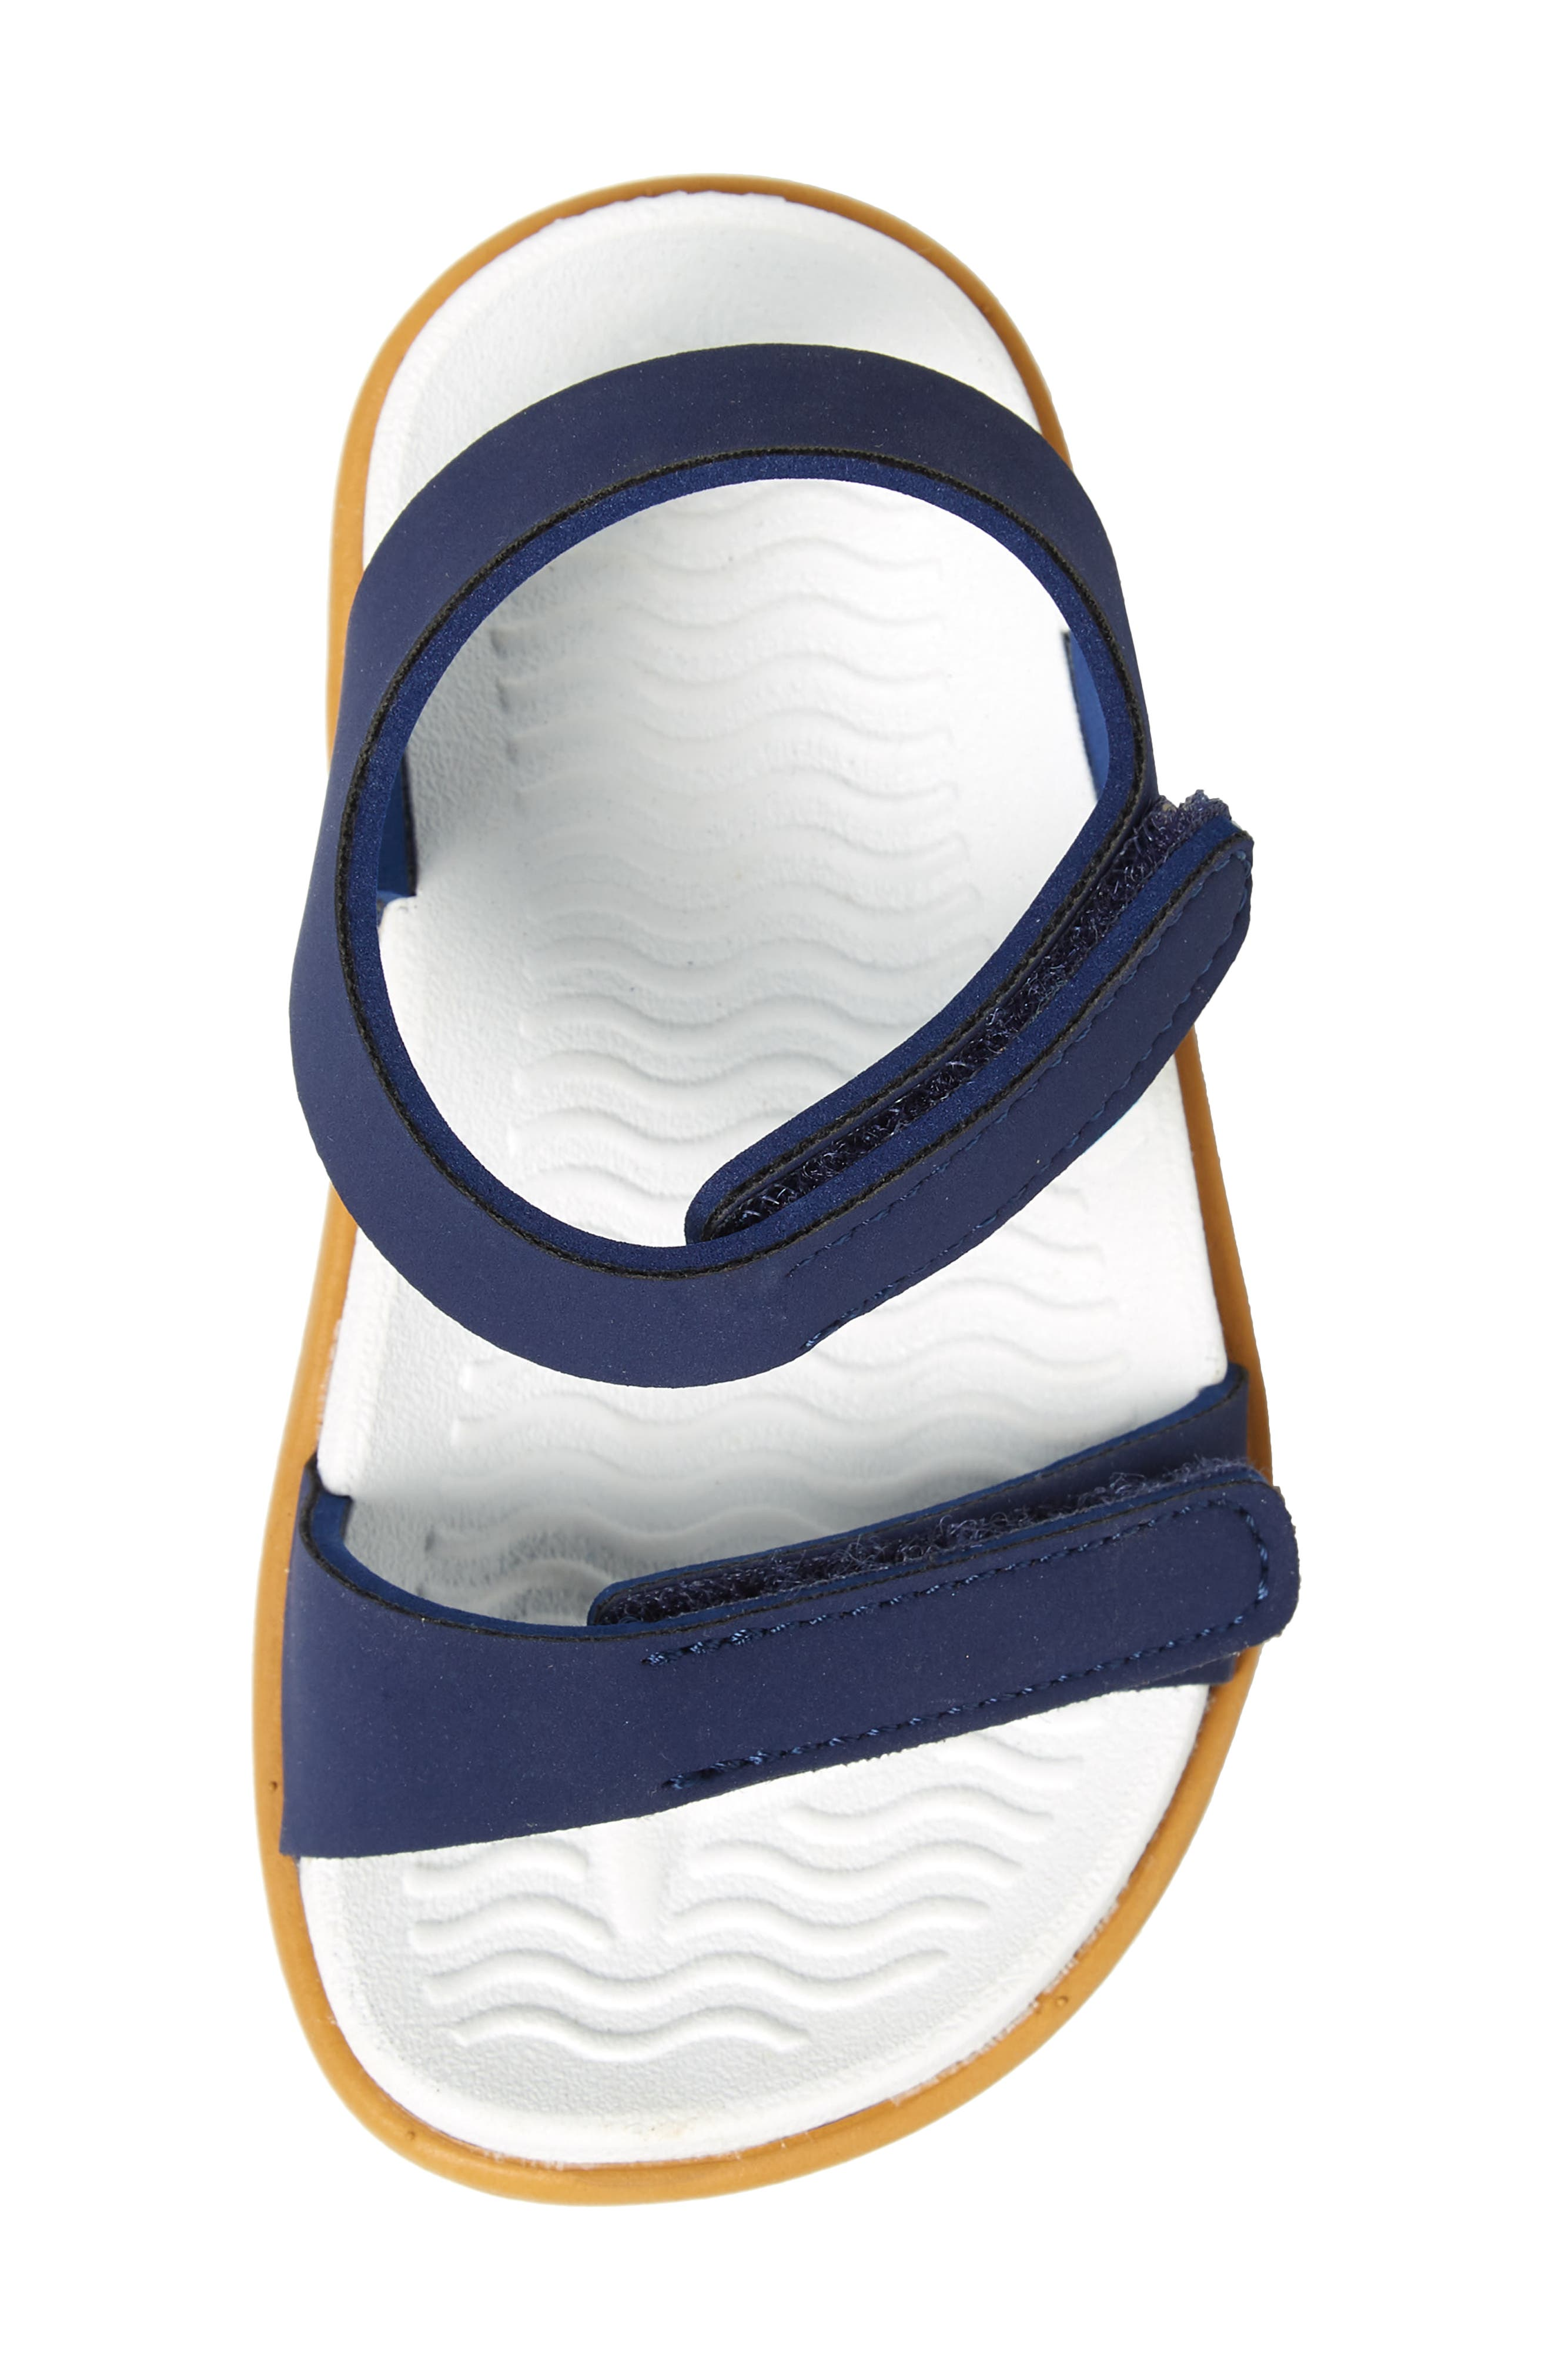 NATIVE SHOES, Charley Child Waterproof Flat Vegan Sandal, Alternate thumbnail 5, color, REGATTA BLUE/ WHITE/ BROWN